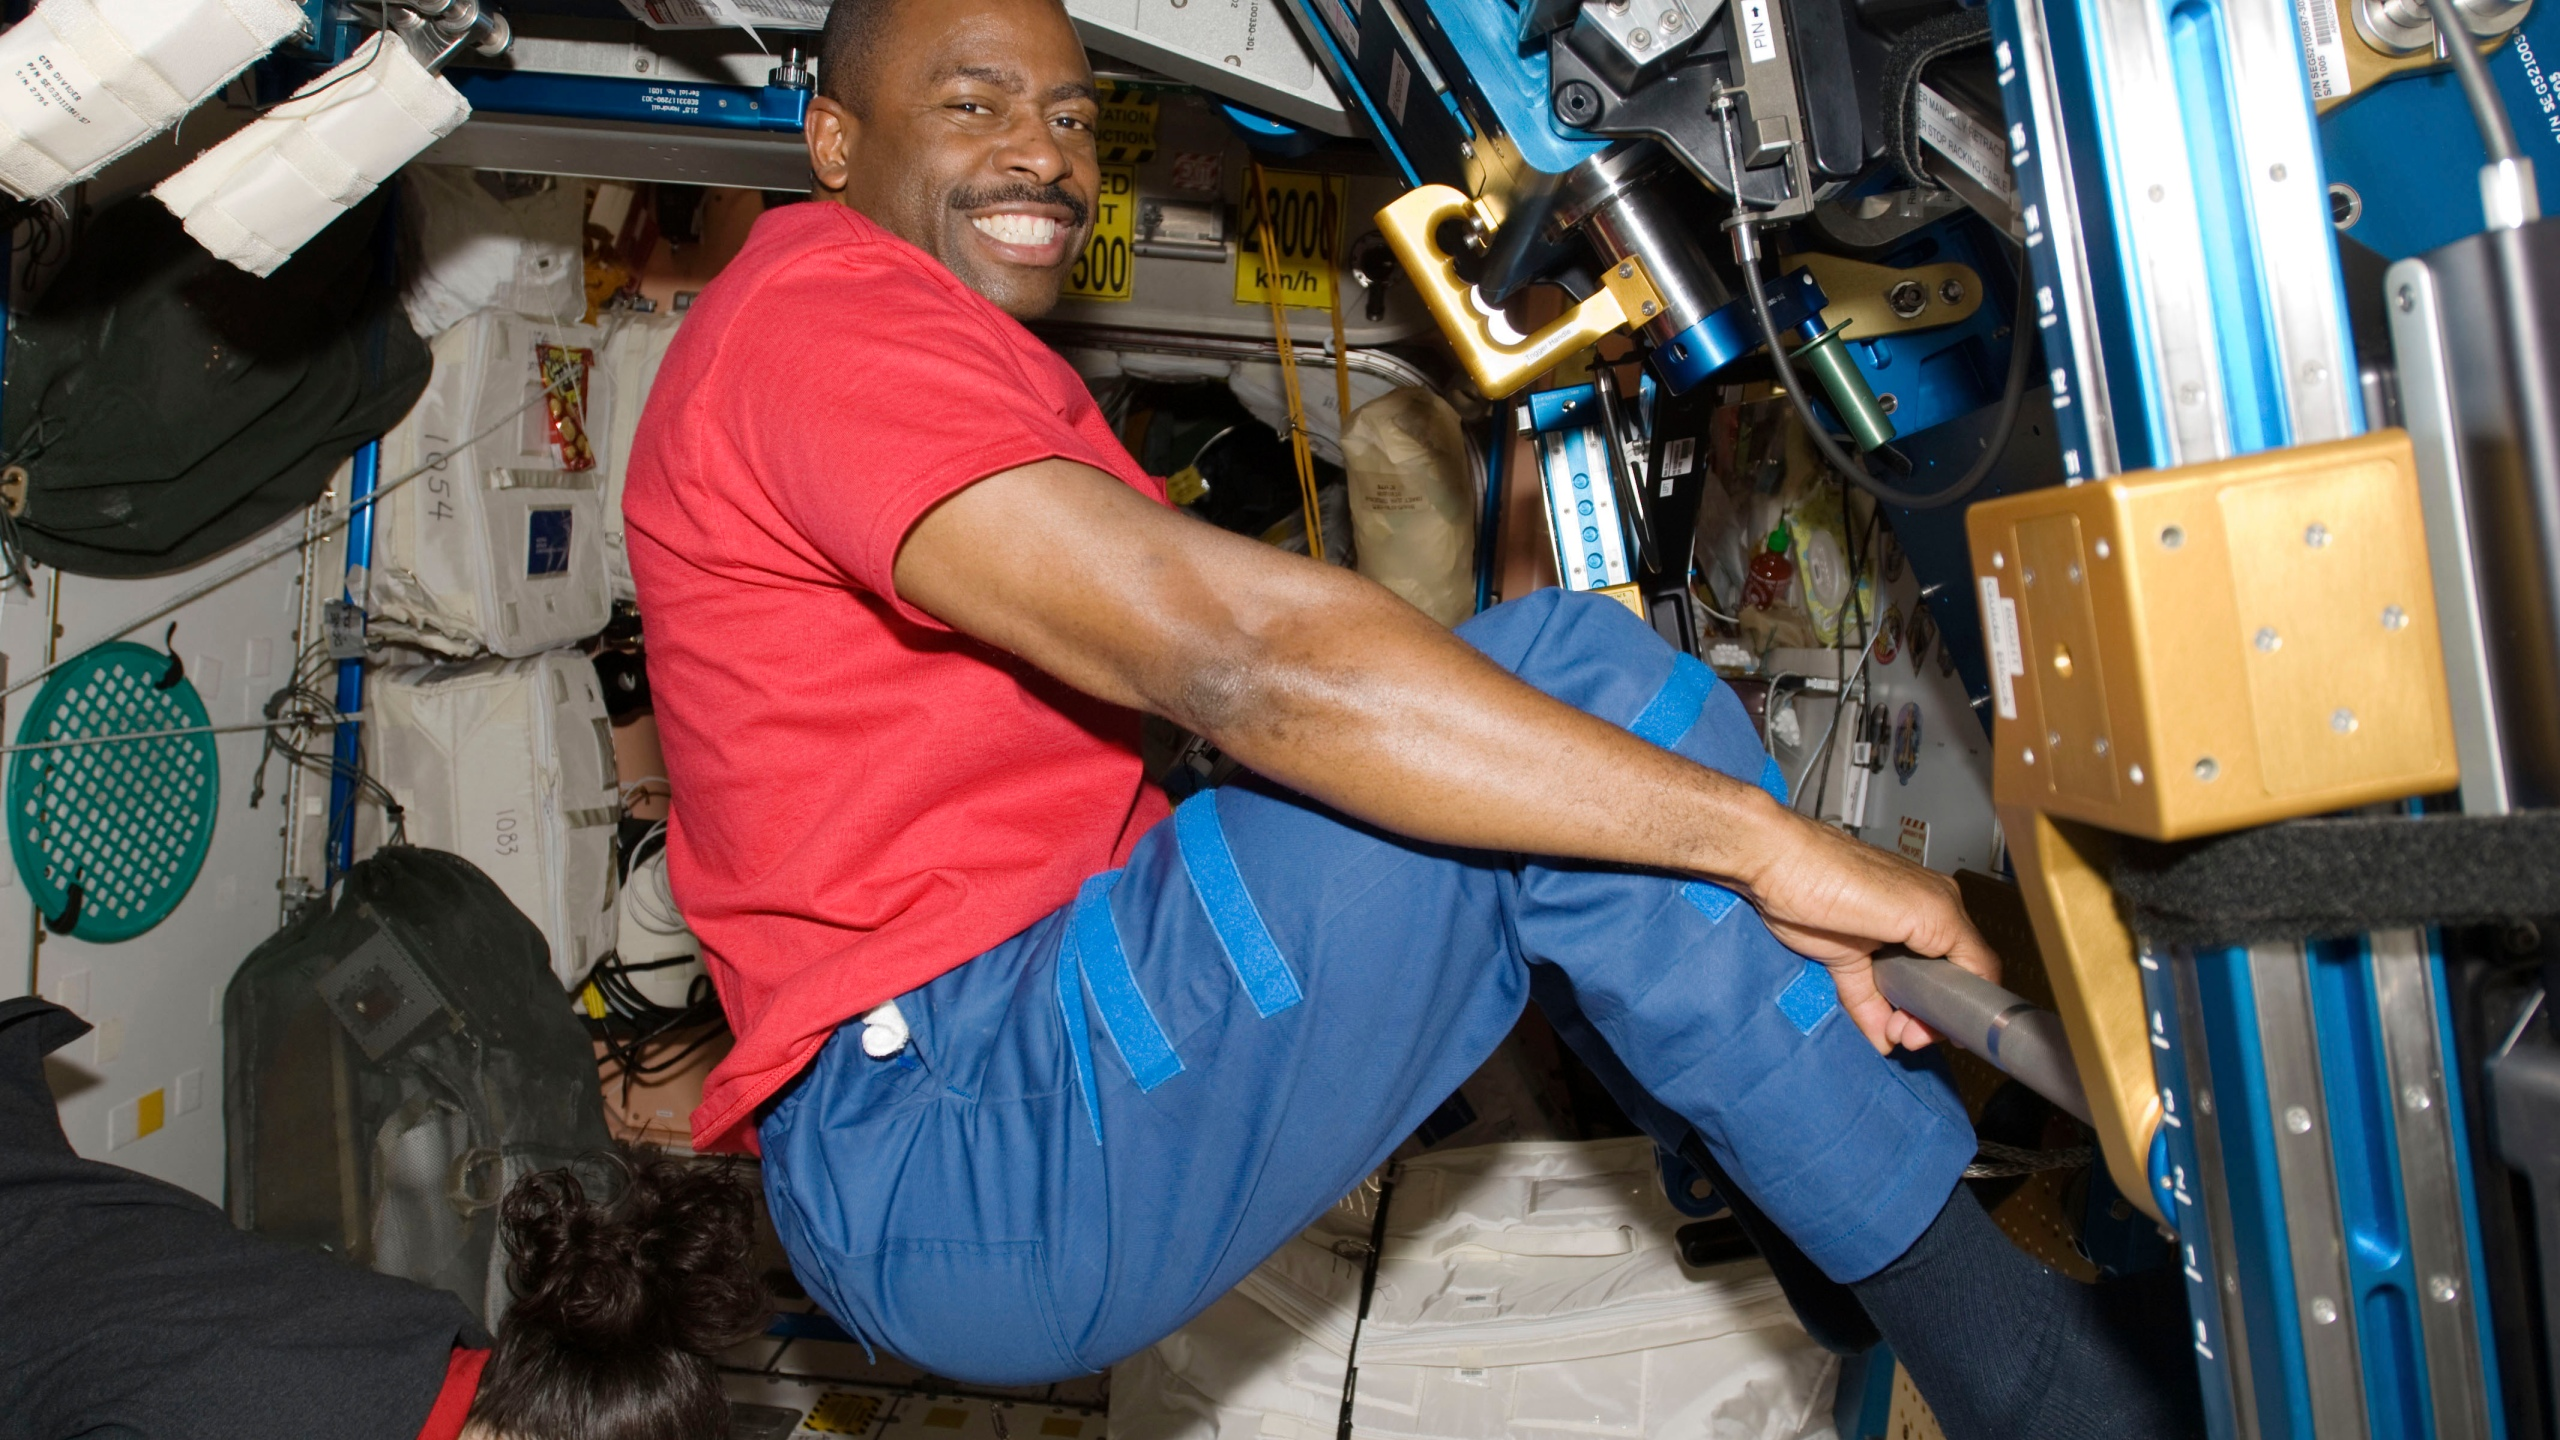 In this Nov. 22, 2009 photo made available by NASA, astronaut Leland Melvin, STS-129 mission specialist, exercises in the Unity module of the International Space Station while the space shuttle Atlantis is docked with the station. Space station astronauts exercise two hours every day to counter the muscle- and bone-withering effects of weightlessness, quickly leaving their workout clothes sweaty, smelly and stiff. Their T-shirts, shorts and socks end up so foul that they run through a pair every week, according to Melvin, a former NASA astronaut and NFL player. (NASA via AP)